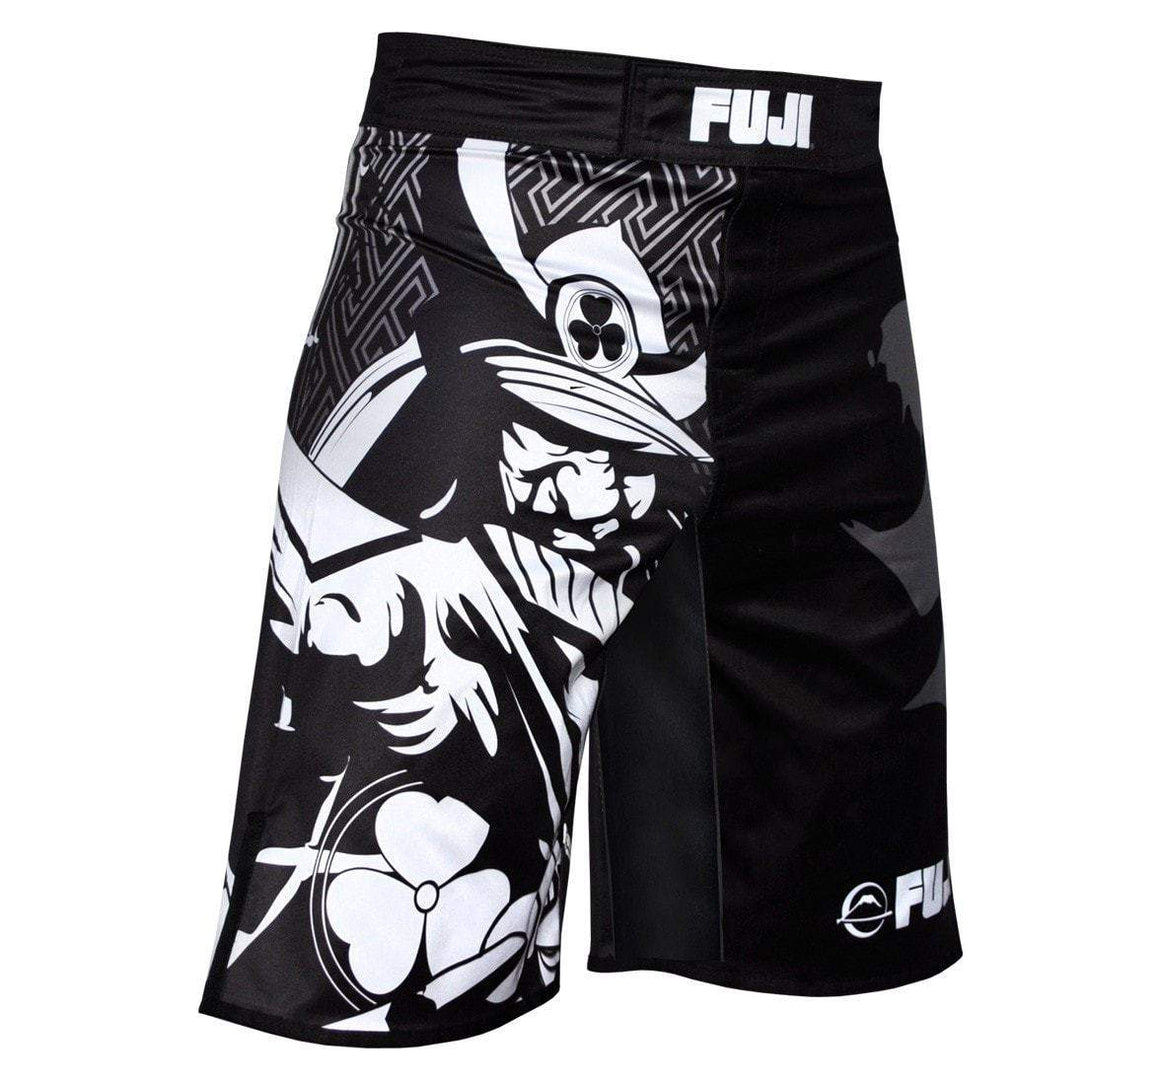 Fuji Musashi Fight Shorts Front